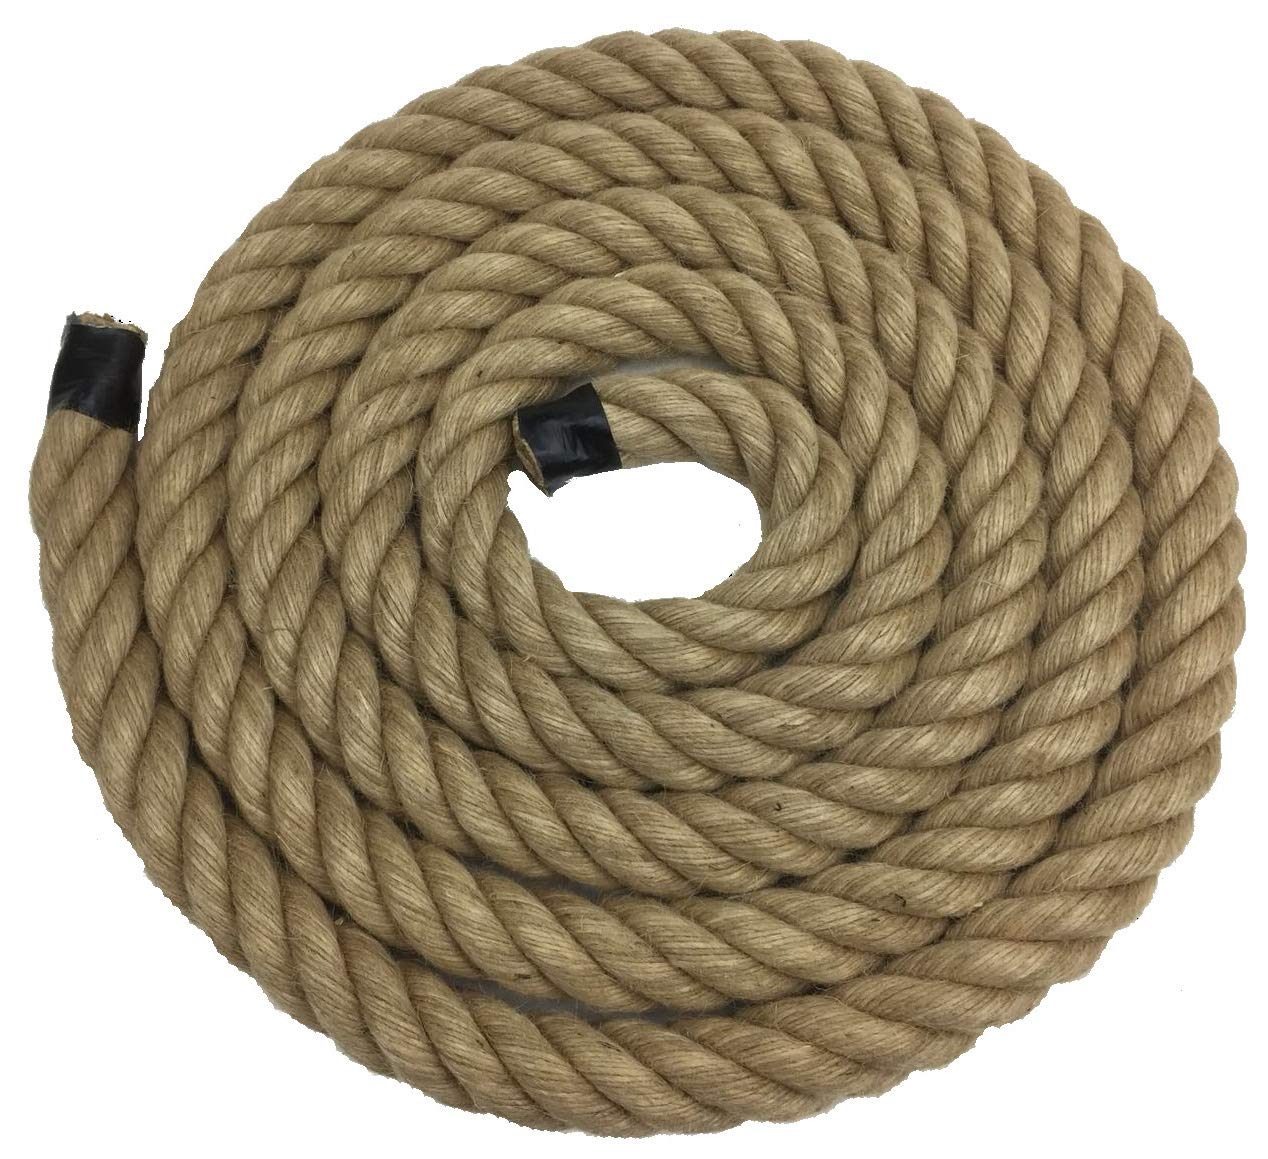 RopeServices UK 24mm Natural Jute Rope x 25 Metre Length - 4 Strand, Decking, Garden, Boating, Home